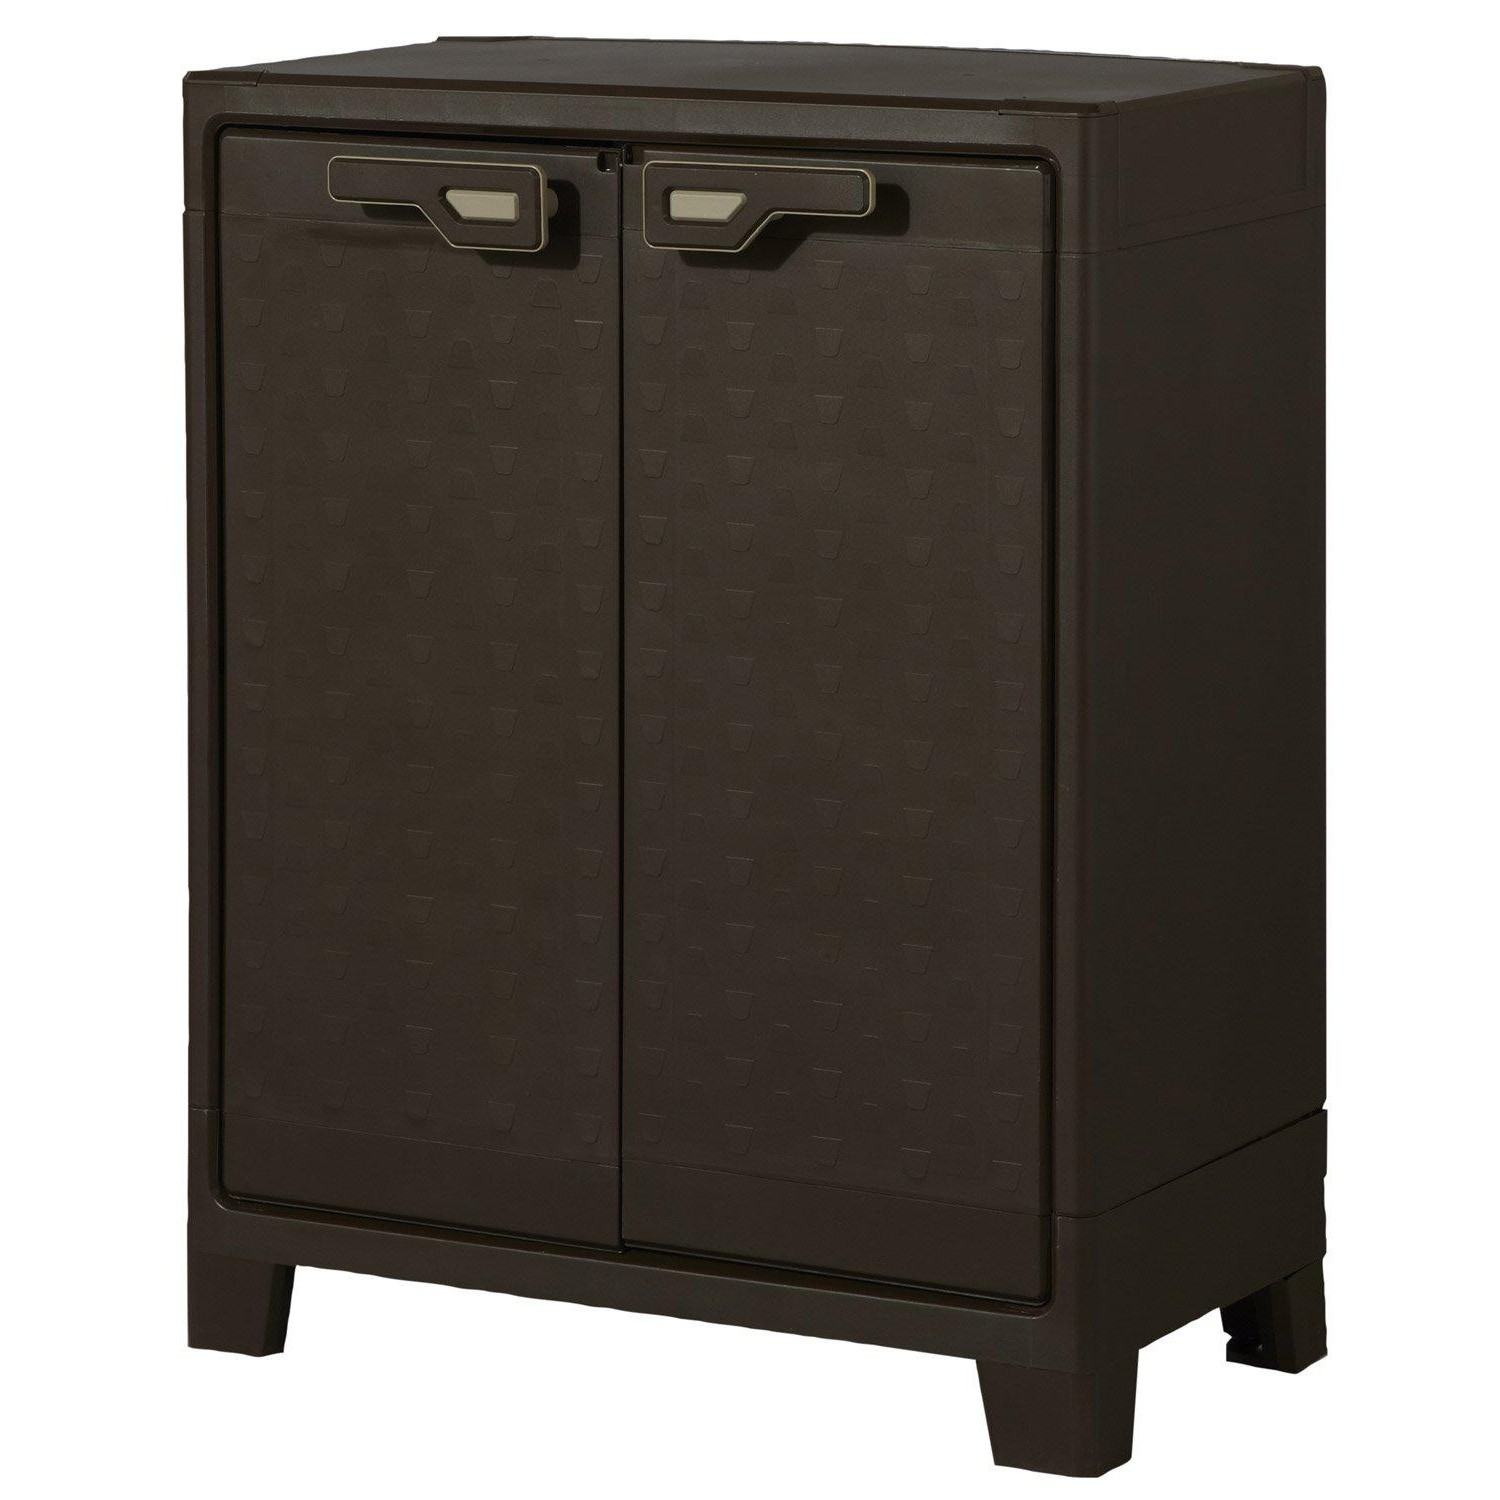 armoire de toilette leroy merlin cool armoire de toilette. Black Bedroom Furniture Sets. Home Design Ideas